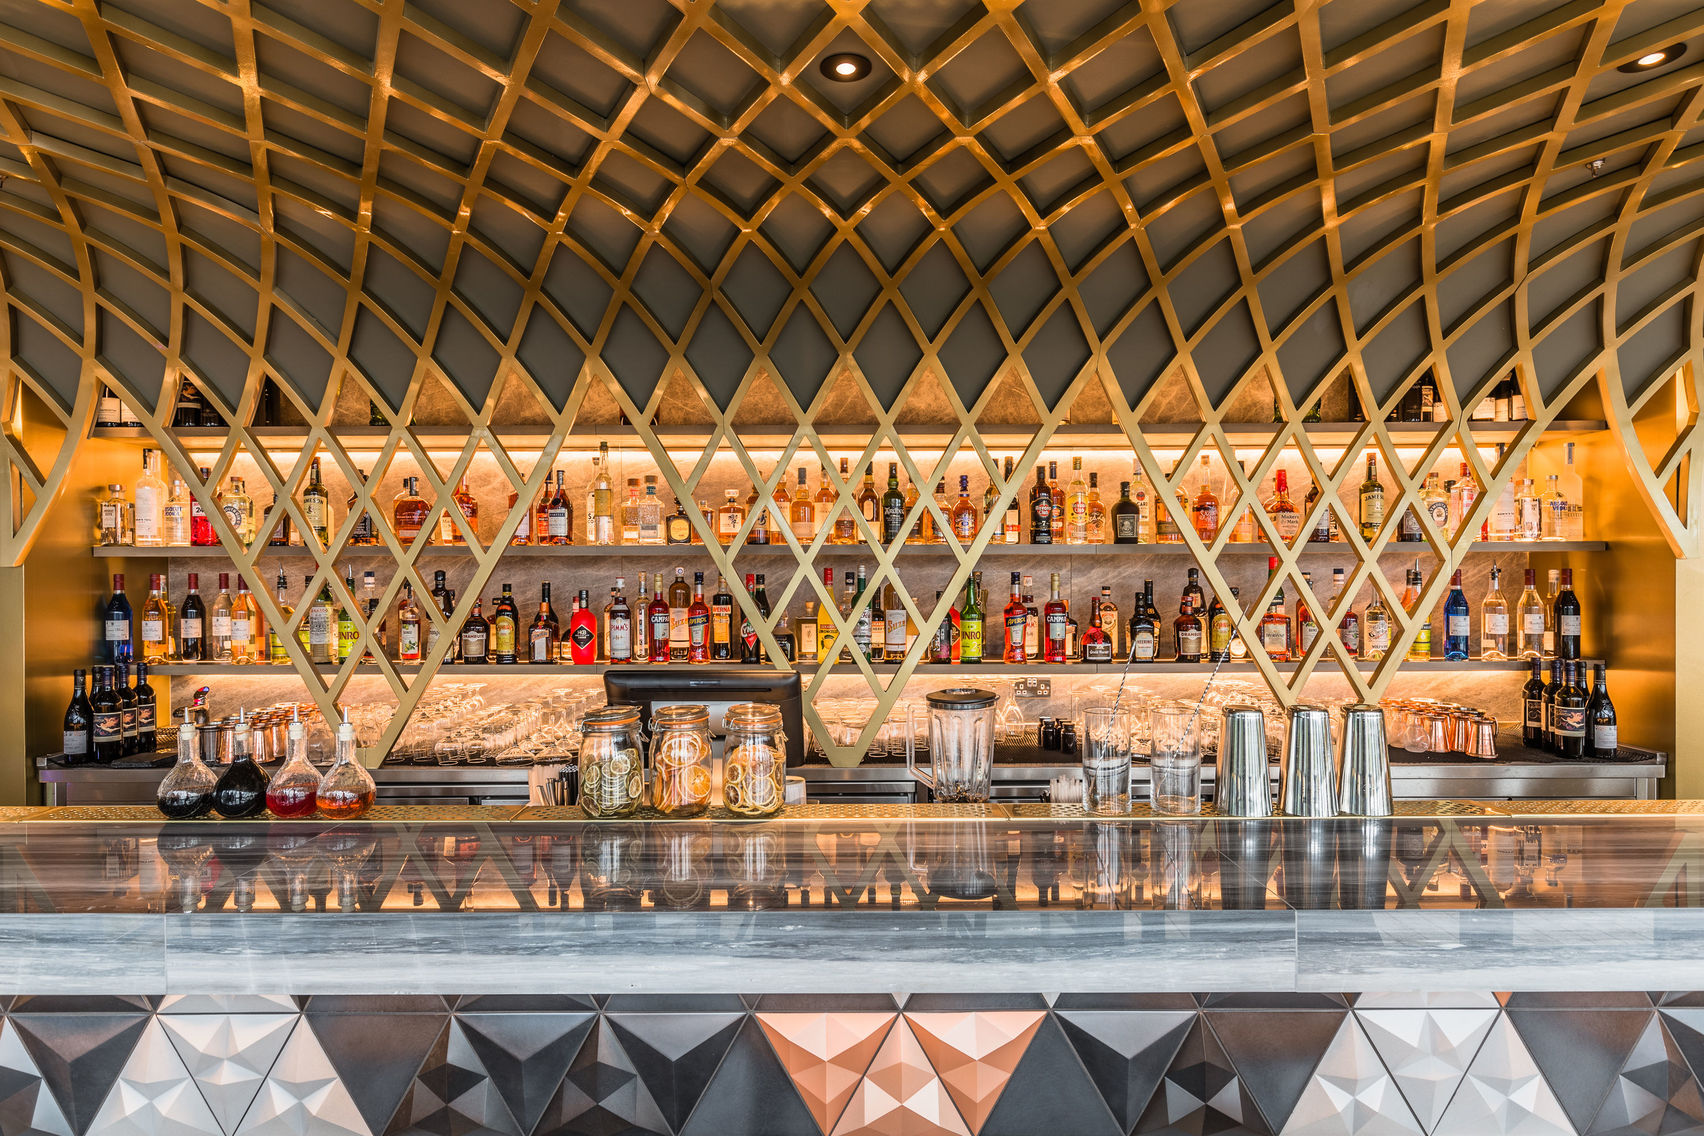 An image of the bar at Jin Bo Law, with copper wiring and dark marble bar